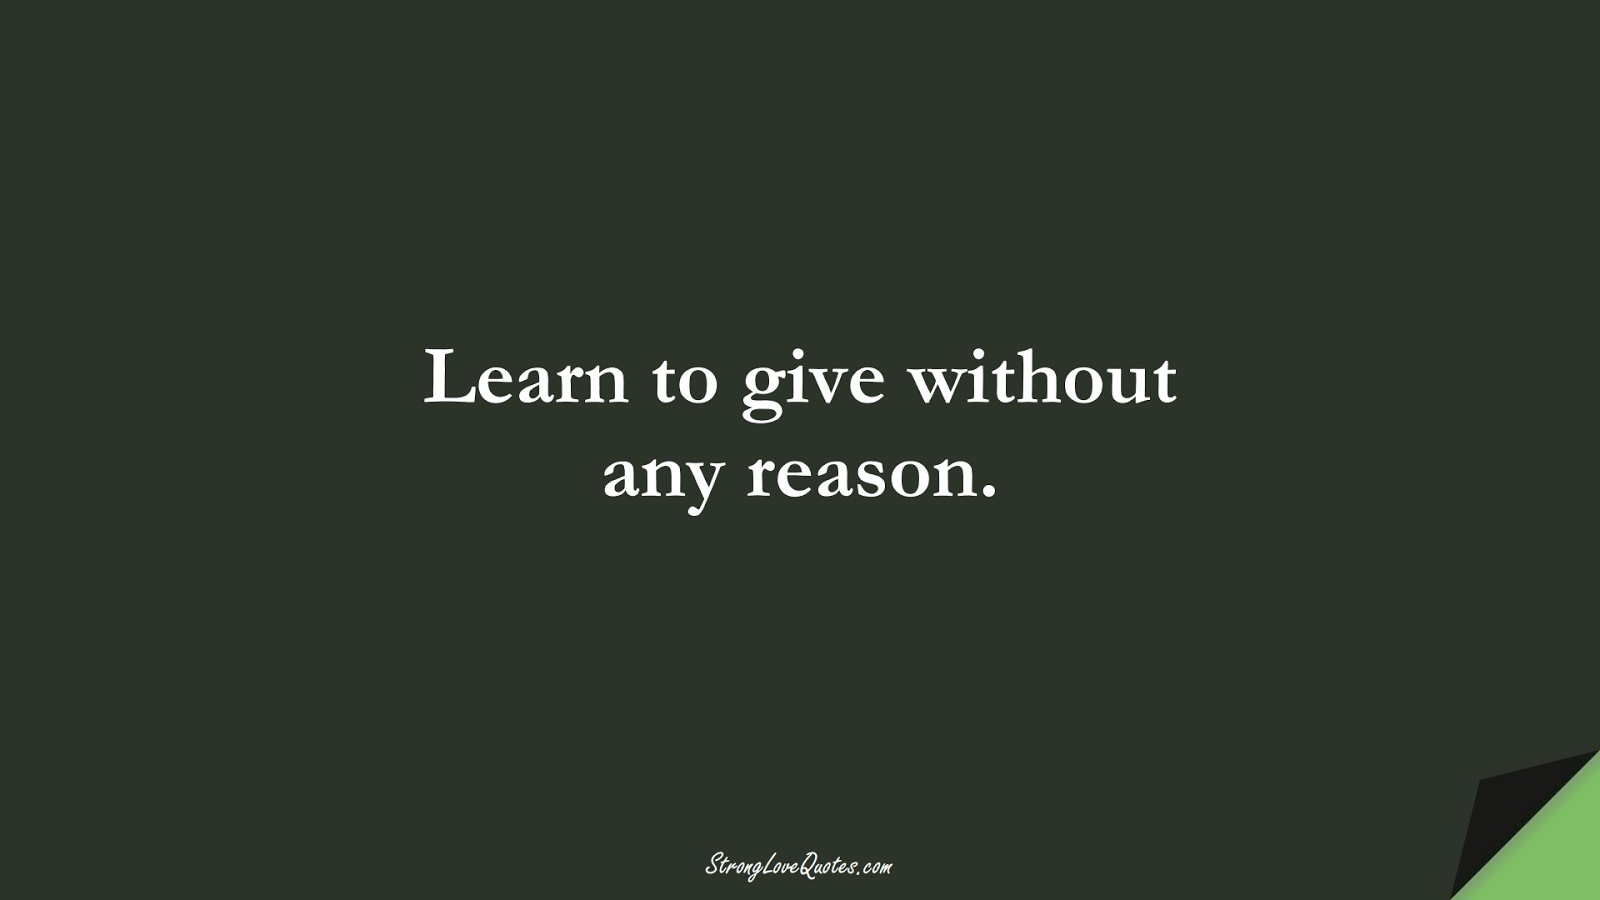 Learn to give without any reason.FALSE